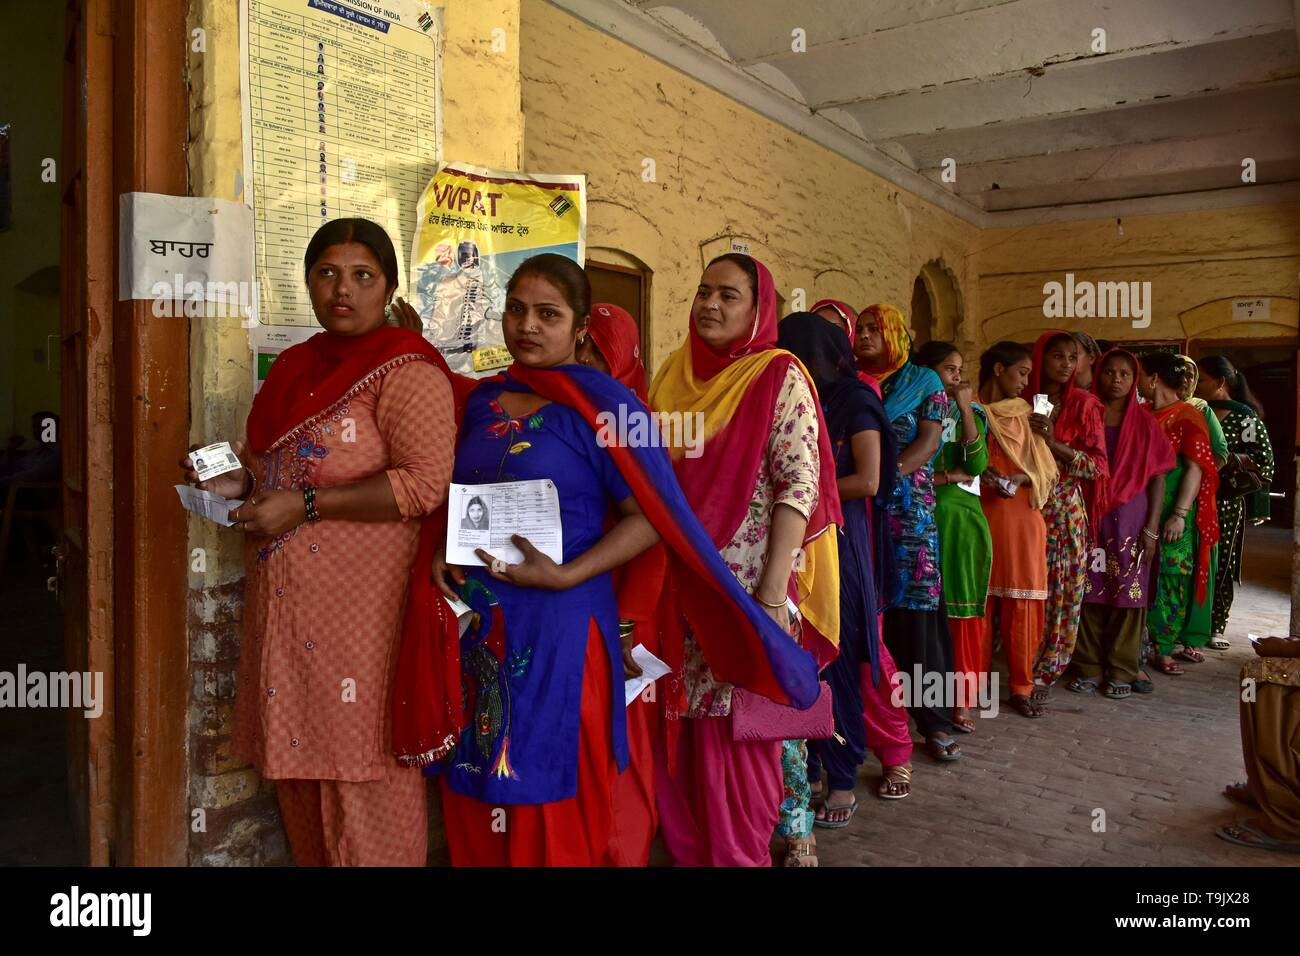 Indian voters seen in a queue at a polling station during the final phase of India's general election in Patiala district of Punjab. Voting has begun for the final phase of Lok Sabha elections in Punjab, Bihar, West Bengal, Madhya Pradesh, Uttar Pradesh, Himachal Pradesh, Jharkhand and Chandigarh. Over 10.01 lakh voters will decide the fate of 918 candidates. The counting of votes will take place on May 23, officials said. - Stock Image